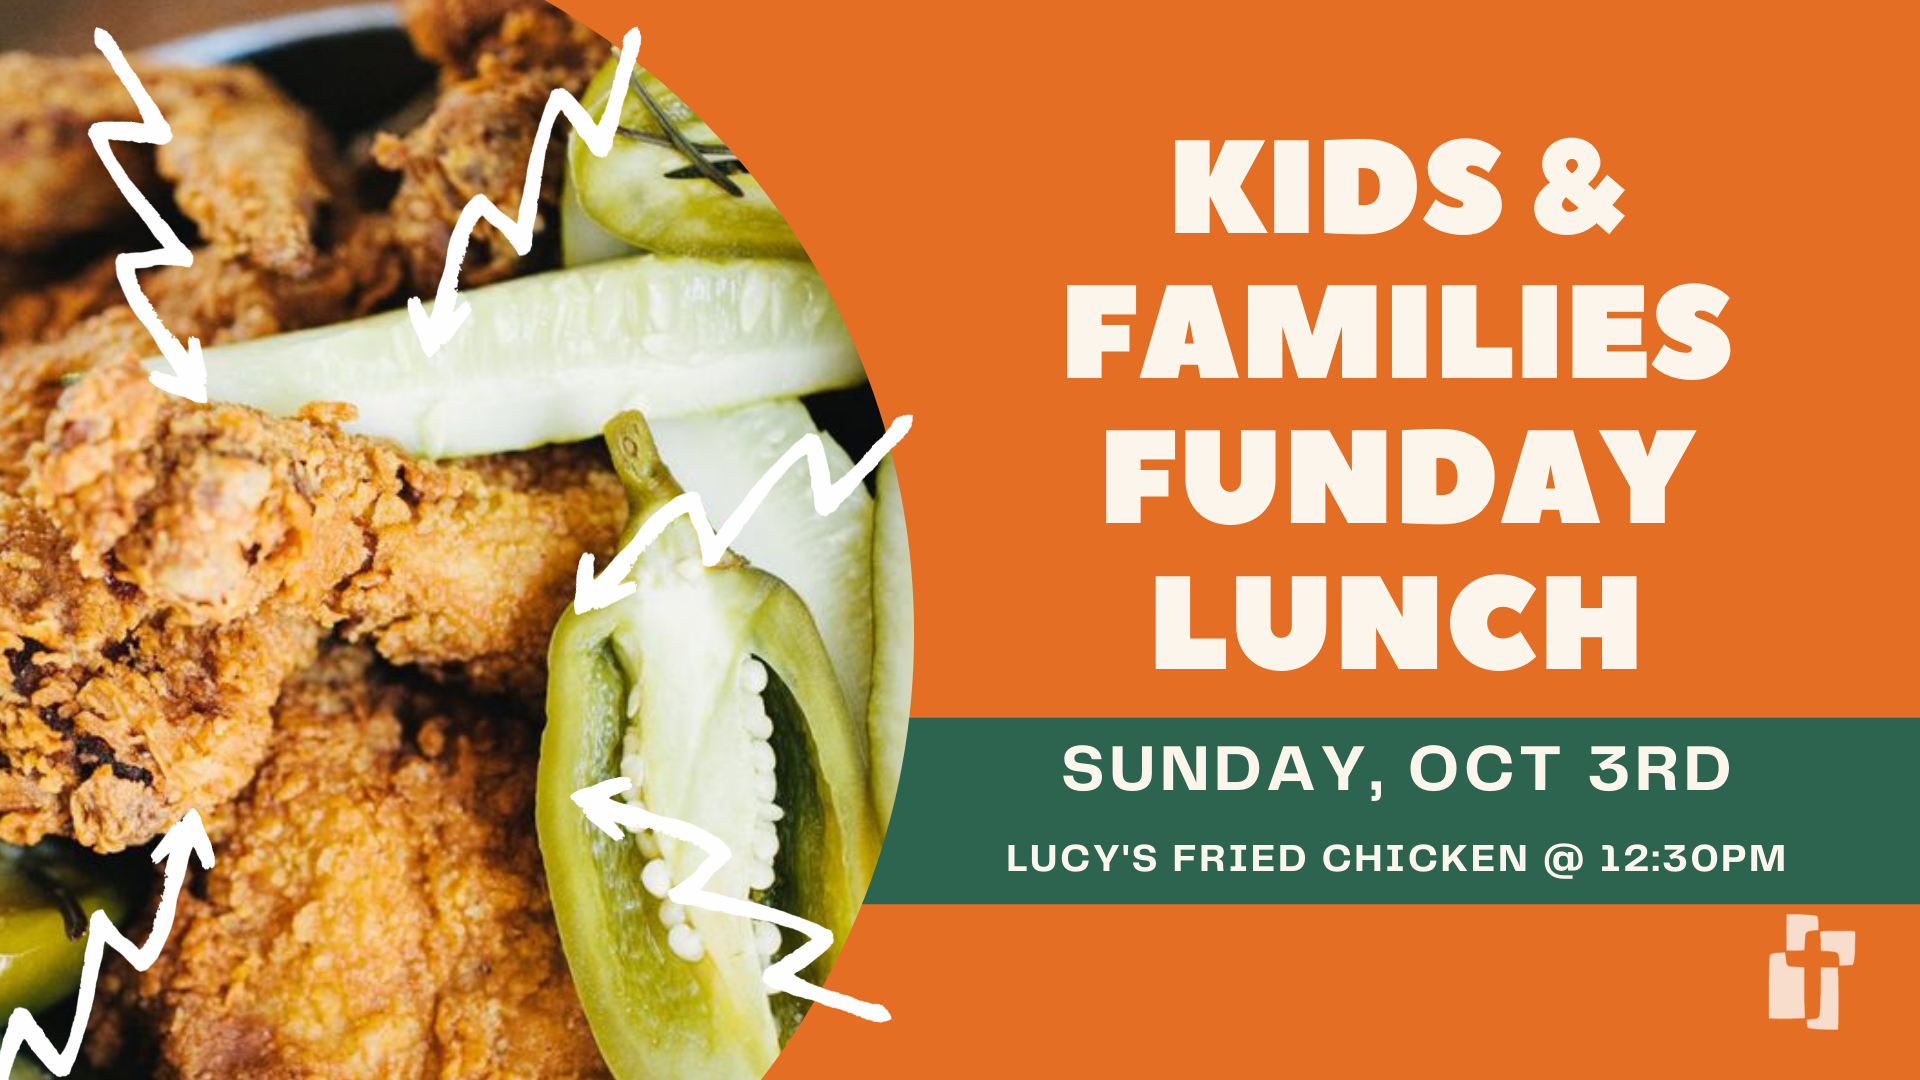 Kids & Families Funday Lunch